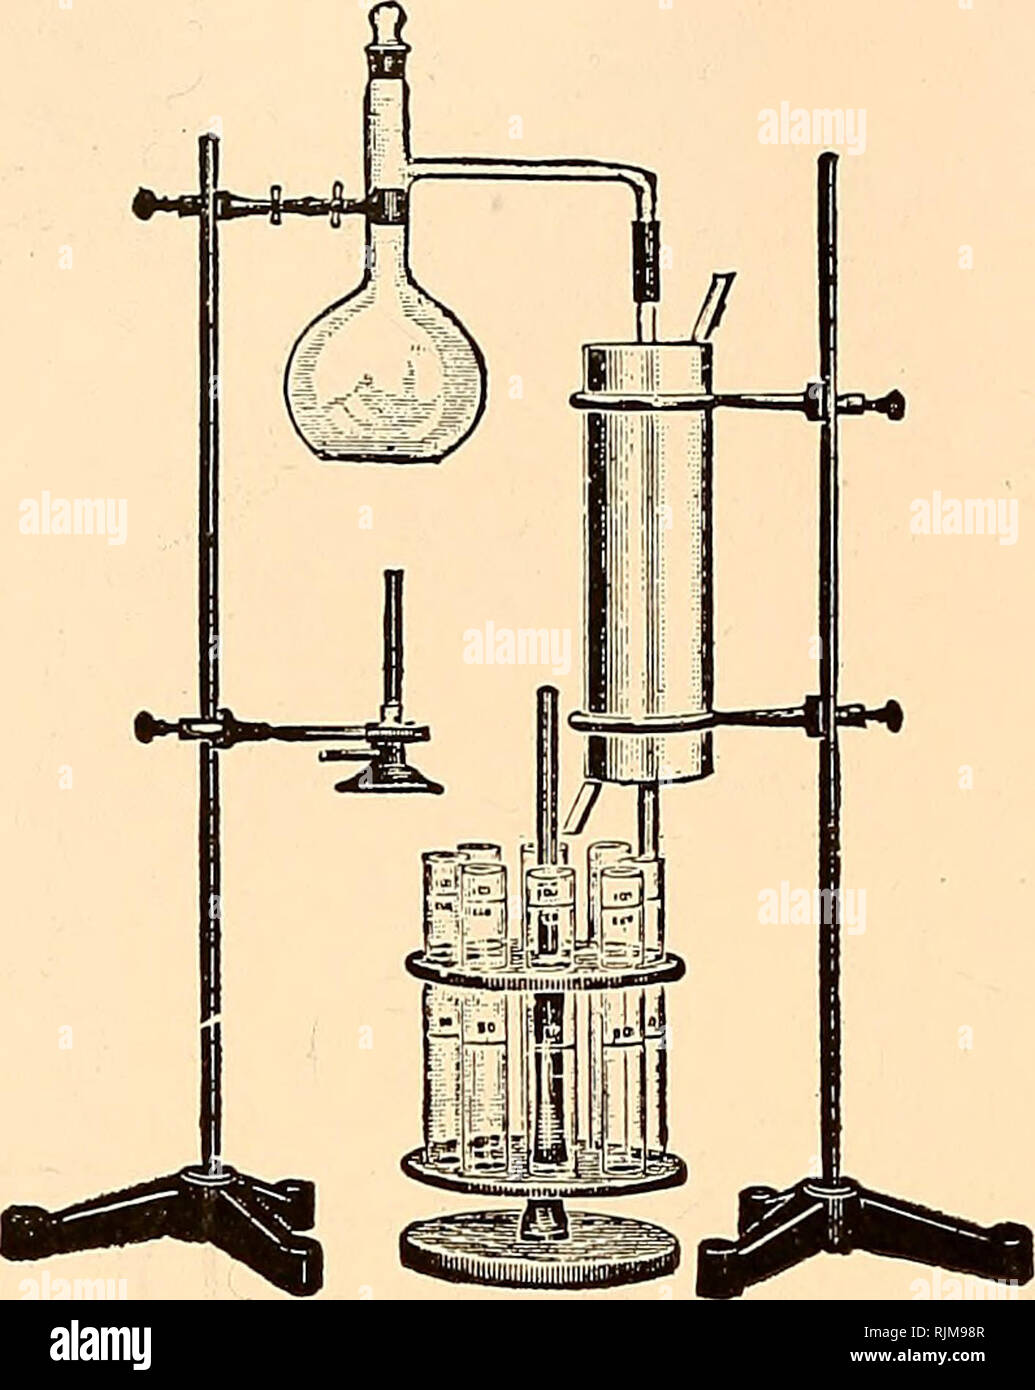 ". Bacteriological apparatus : pathological, biochemical. Scientific apparatus and instruments; Bacteriology; Chemical industry. <ttft Hill QLarpatatian. Siutfraipr, -DC.. cc. 2375 18755 2380 2185 2185 Color Comparison Tubes—Nessler's. Tall form; with polished bottoms made from clear glass. The 50 cc mark on the 50 cc tube is between 200 and 250 mm from the bottom and the 100 cc mark on the 100 cc tube is between 275 and 325 mm from bottom. Tubes in sets of six or twelve have 50 cc or 100 cc mark within 6 mm of same height. See American Public Health Association, ""Standard Methods of Wa Stock Photo"